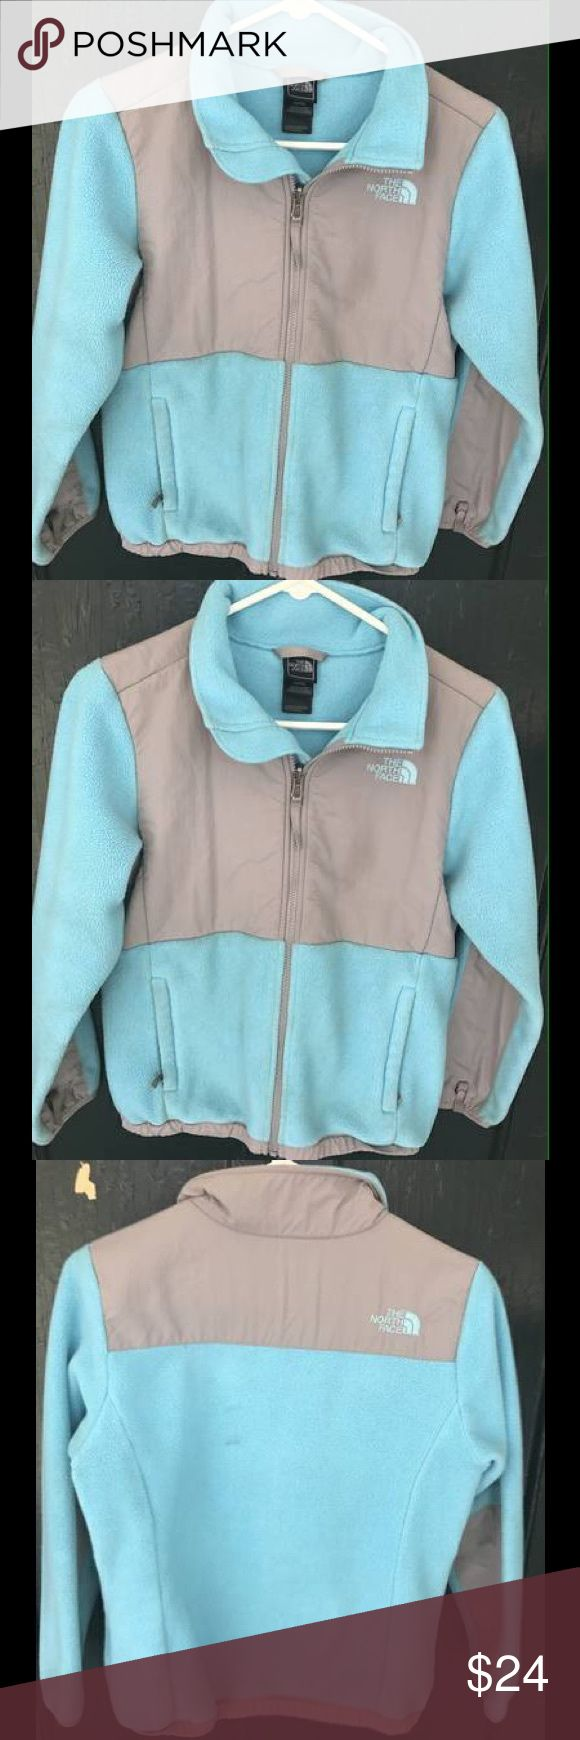 Girls North Face Fleece Jacket It  is a size large 14/16 girls, color is aqua and grey, a little worn but looks in great condition, has a slight stain on the back. North Face Jackets & Coats